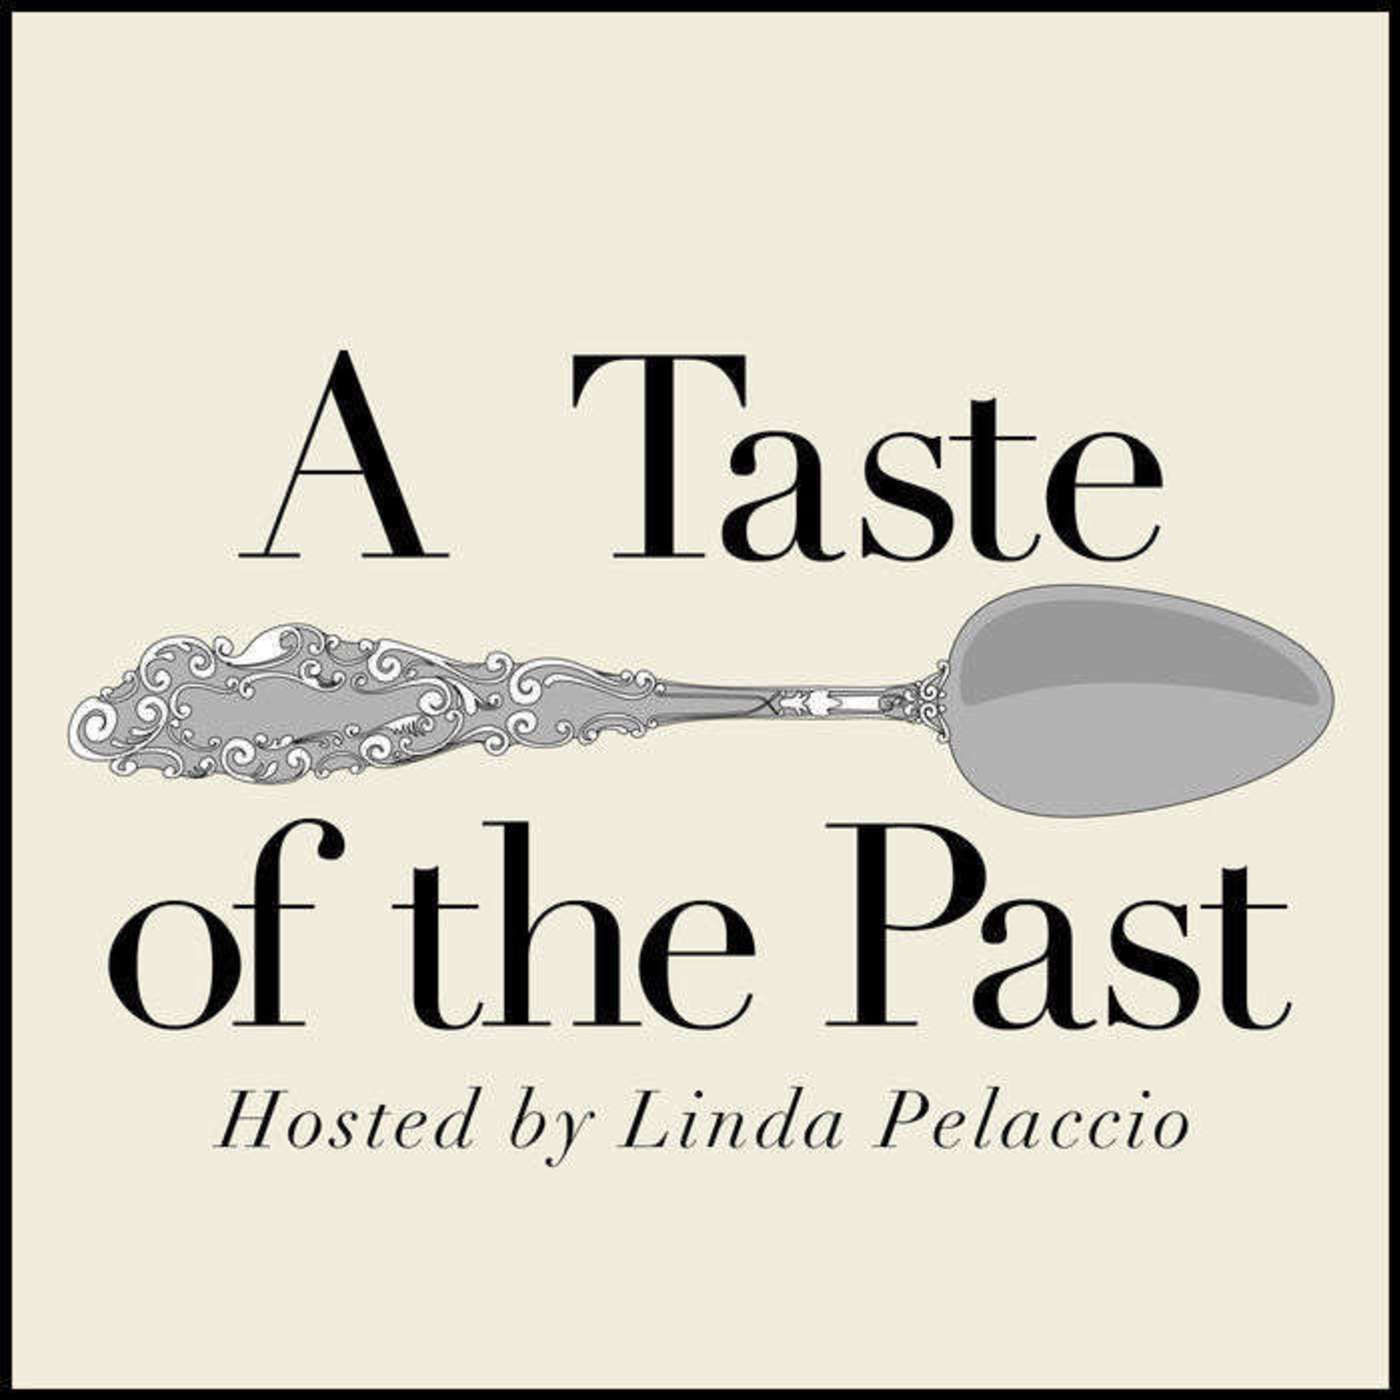 Episode 67: Voices from the Food Revolution